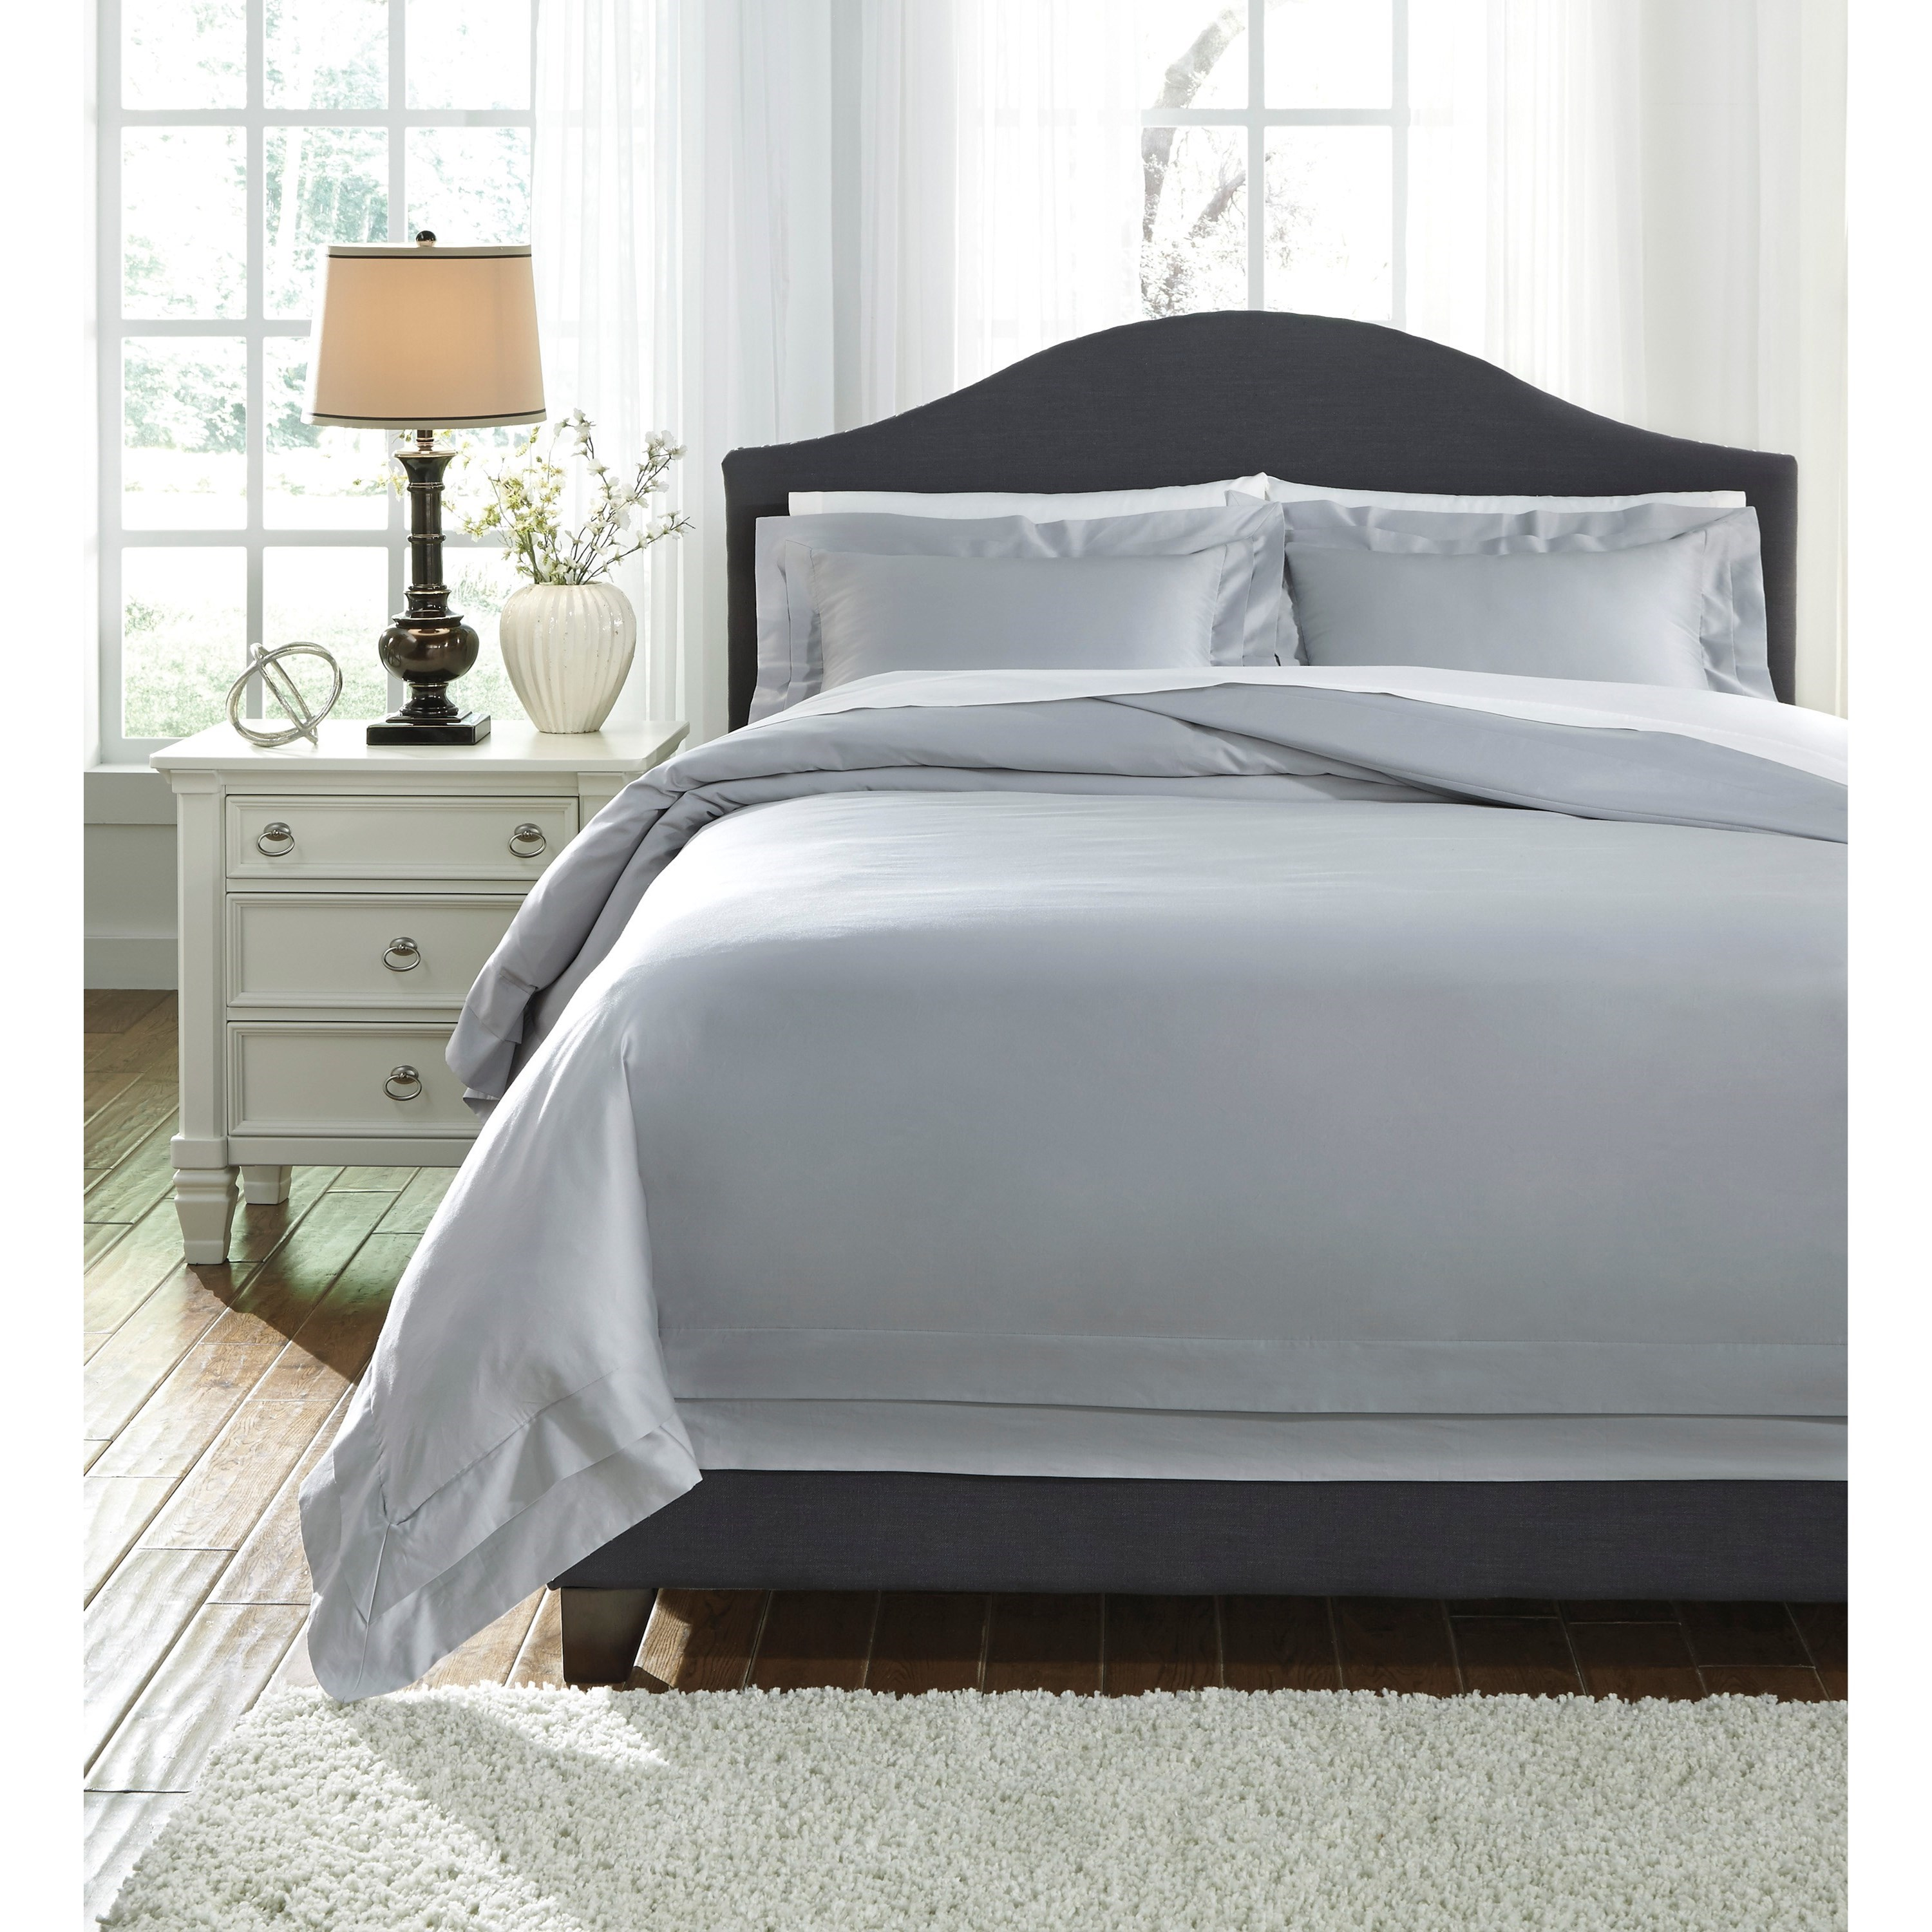 Bedding Sets Queen Chamness Gray Duvet Cover Set by Signature Design by Ashley at Lapeer Furniture & Mattress Center